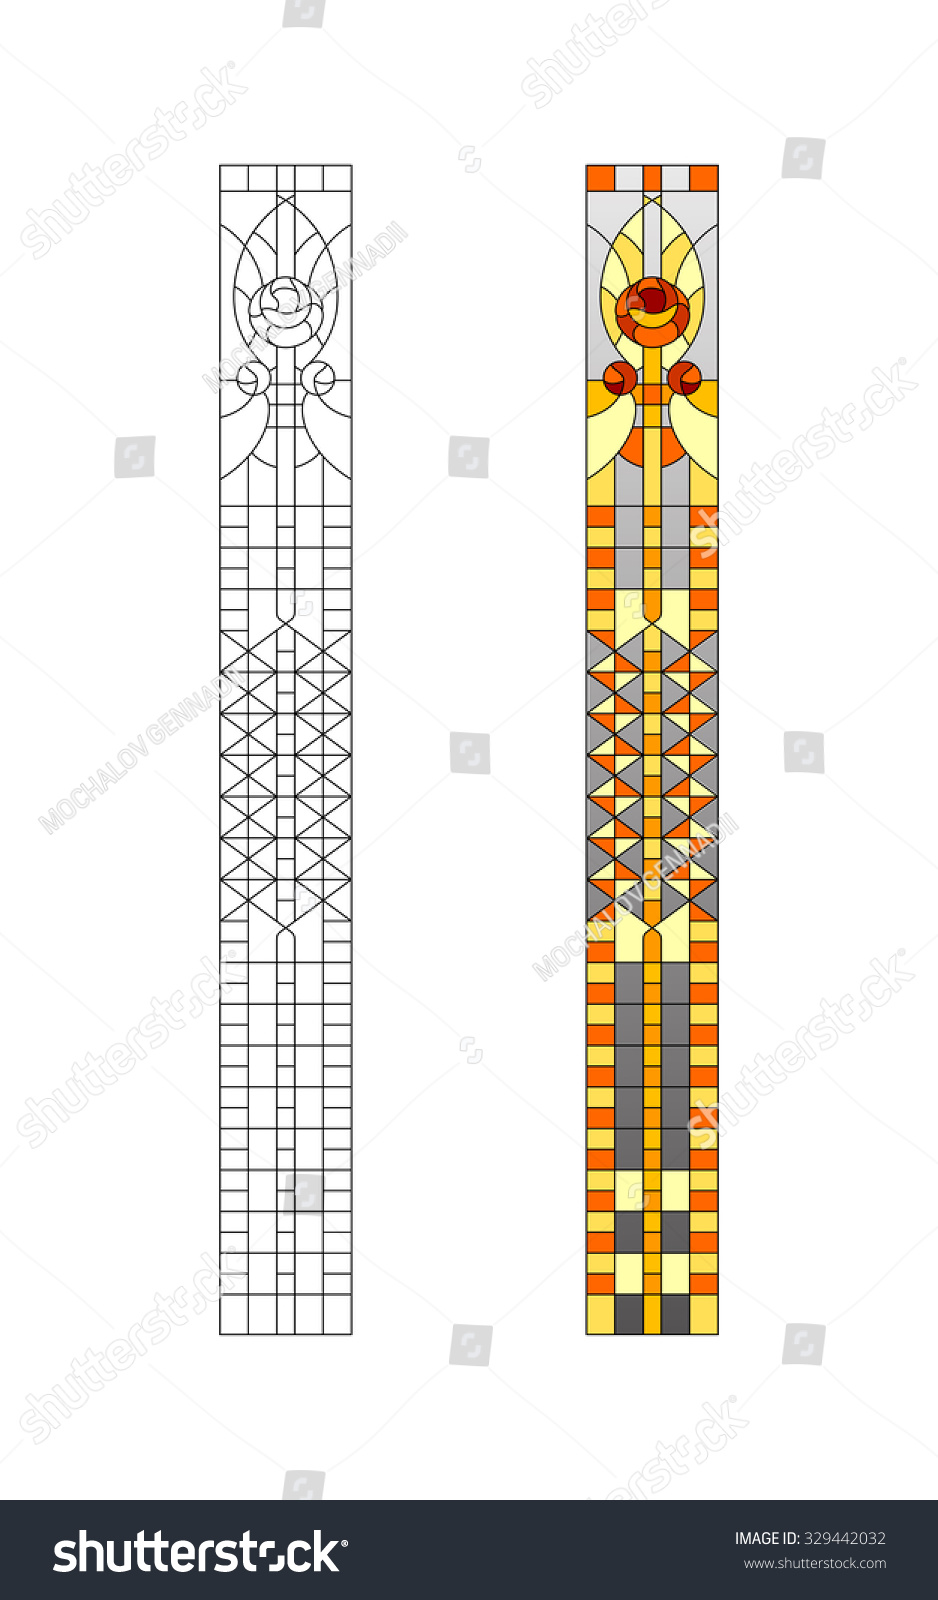 Sketch Stainedglass Windows Stock Vector 329442032 ...